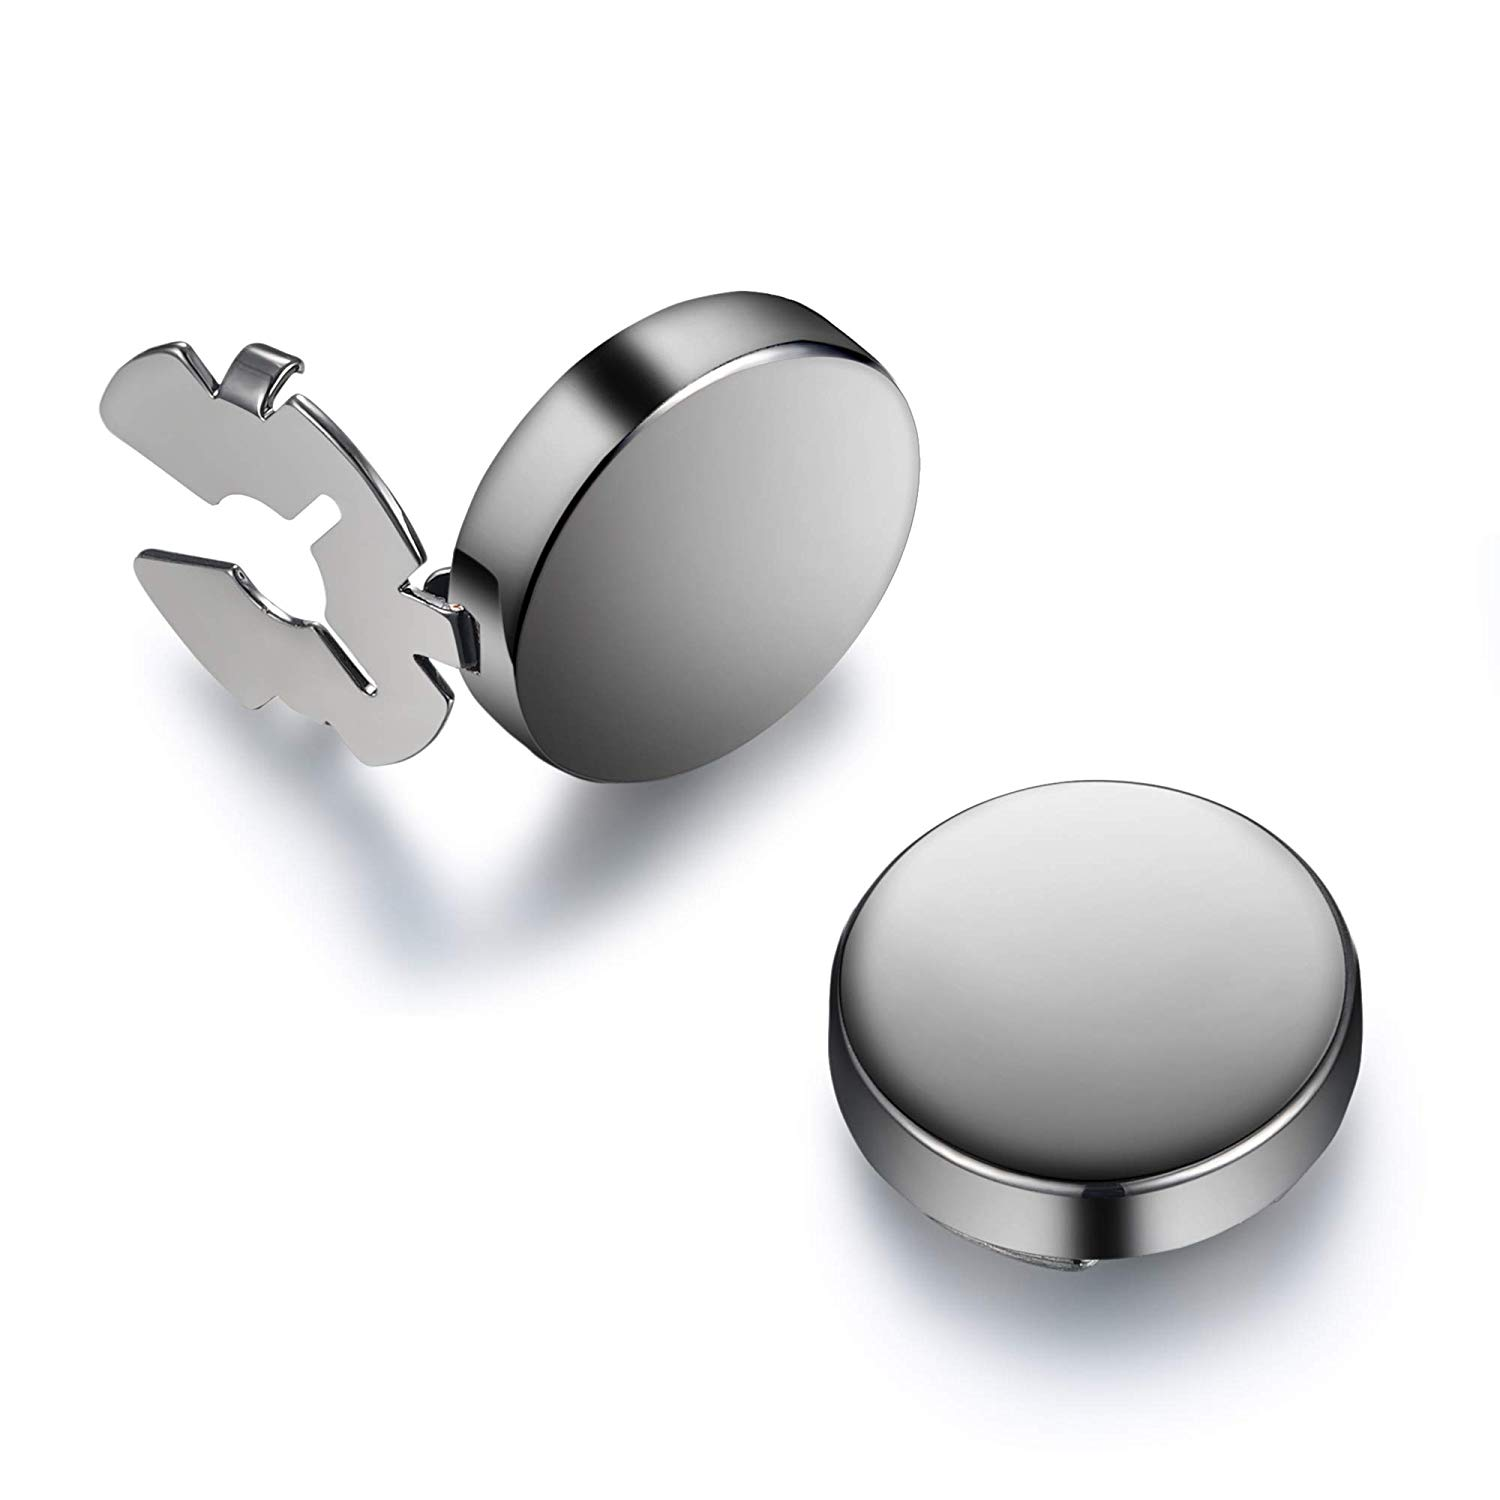 1b153308656 Get Quotations · BUTTONCUFF Classic Men's Button Covers - Cuff Link  Alternative for Tuxedo, Business or Formal Shirts